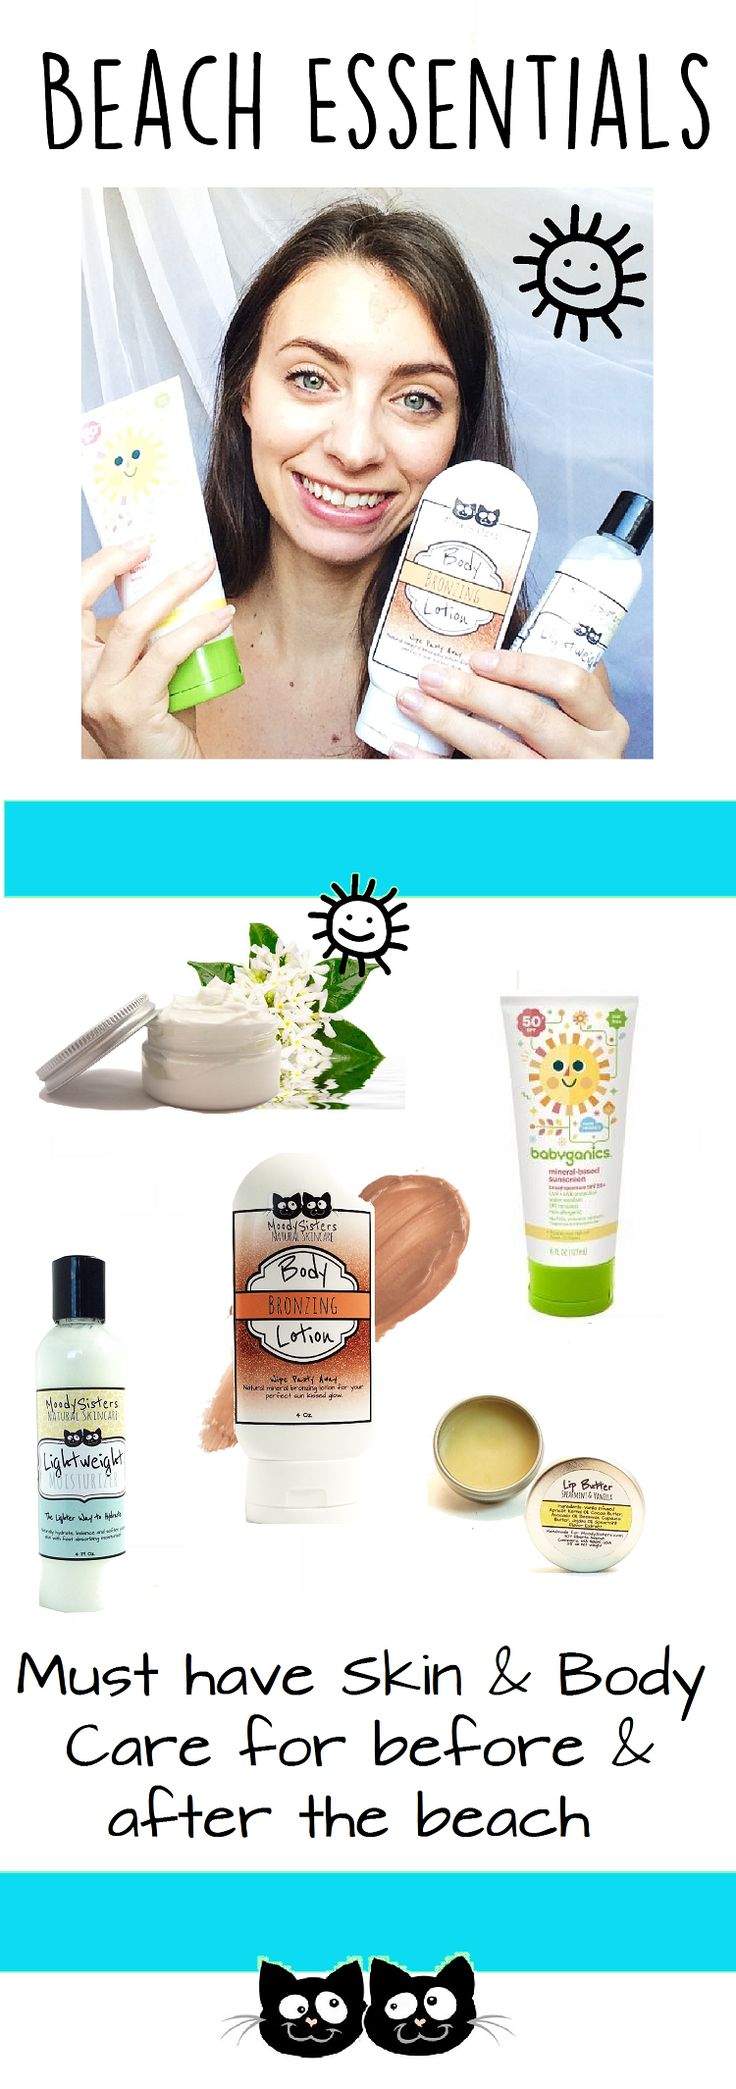 If you're headed out to the beach this summer then read on for your must have skin products to have a flawless time. I'm getting ready to pack up next week for the Oregon coast so I wanted to share with you your must have beach items for before and after a trip to the beach that you'll want to have on hand.  MoodySisters.com/blog